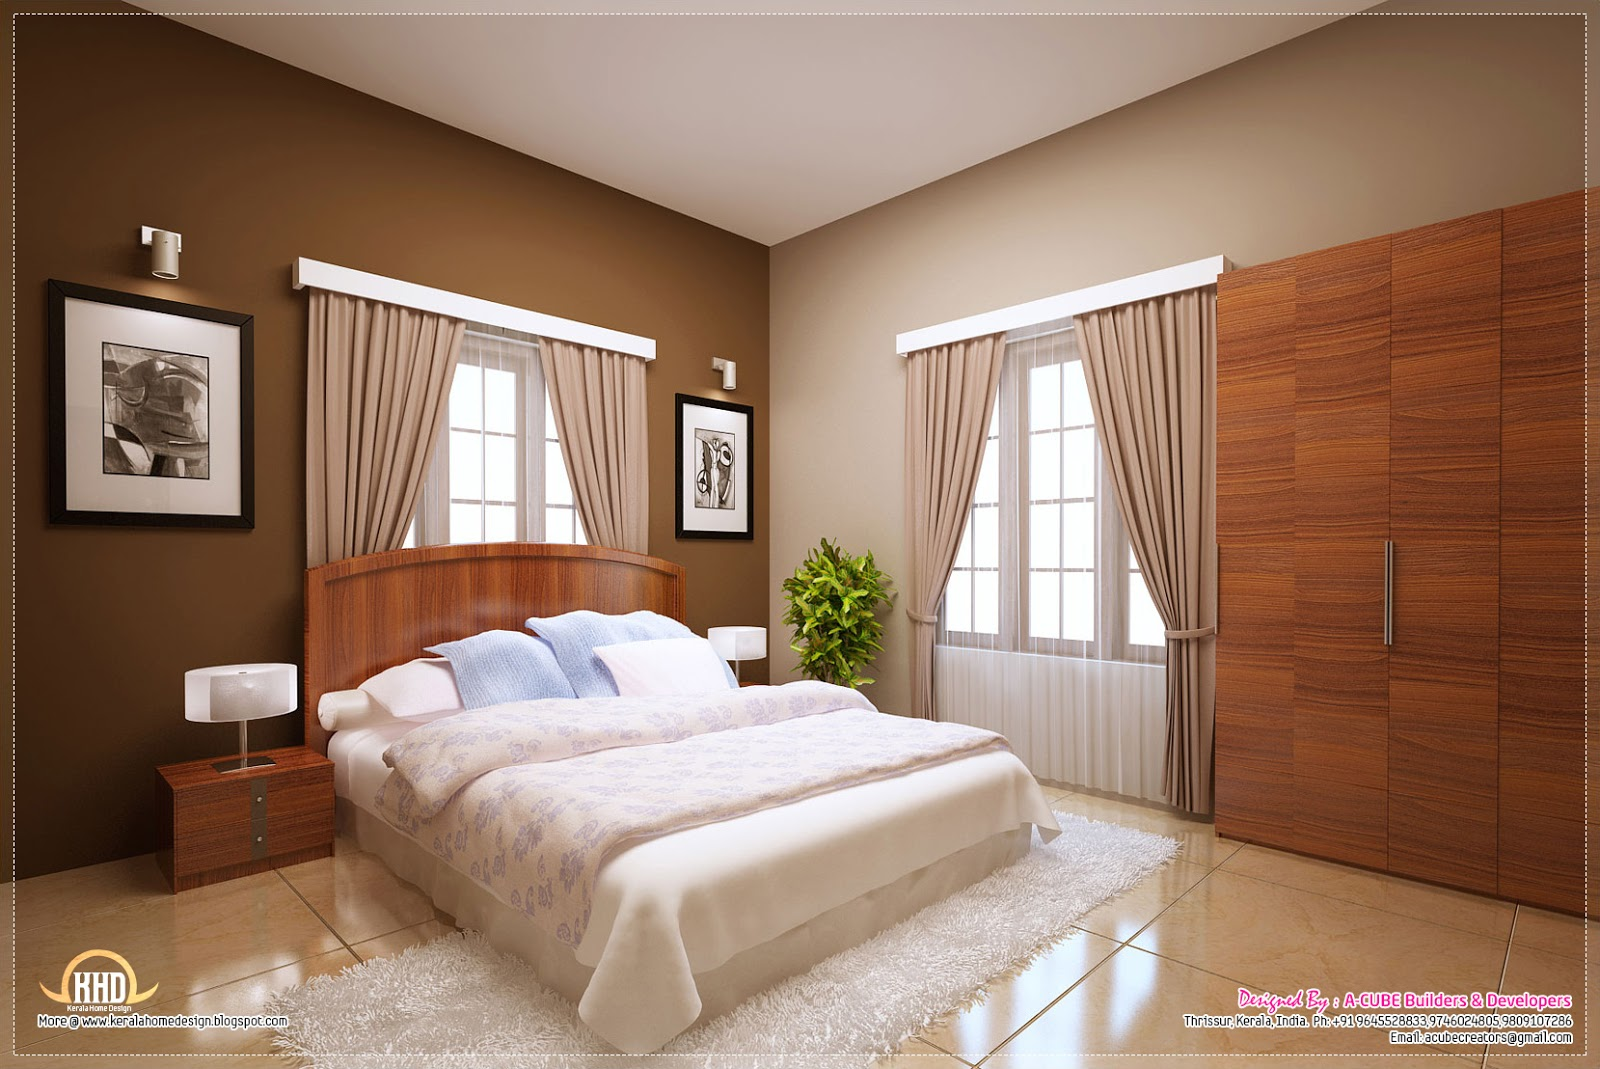 Awesome interior decoration ideas house design plans for Interior designs for bedroom